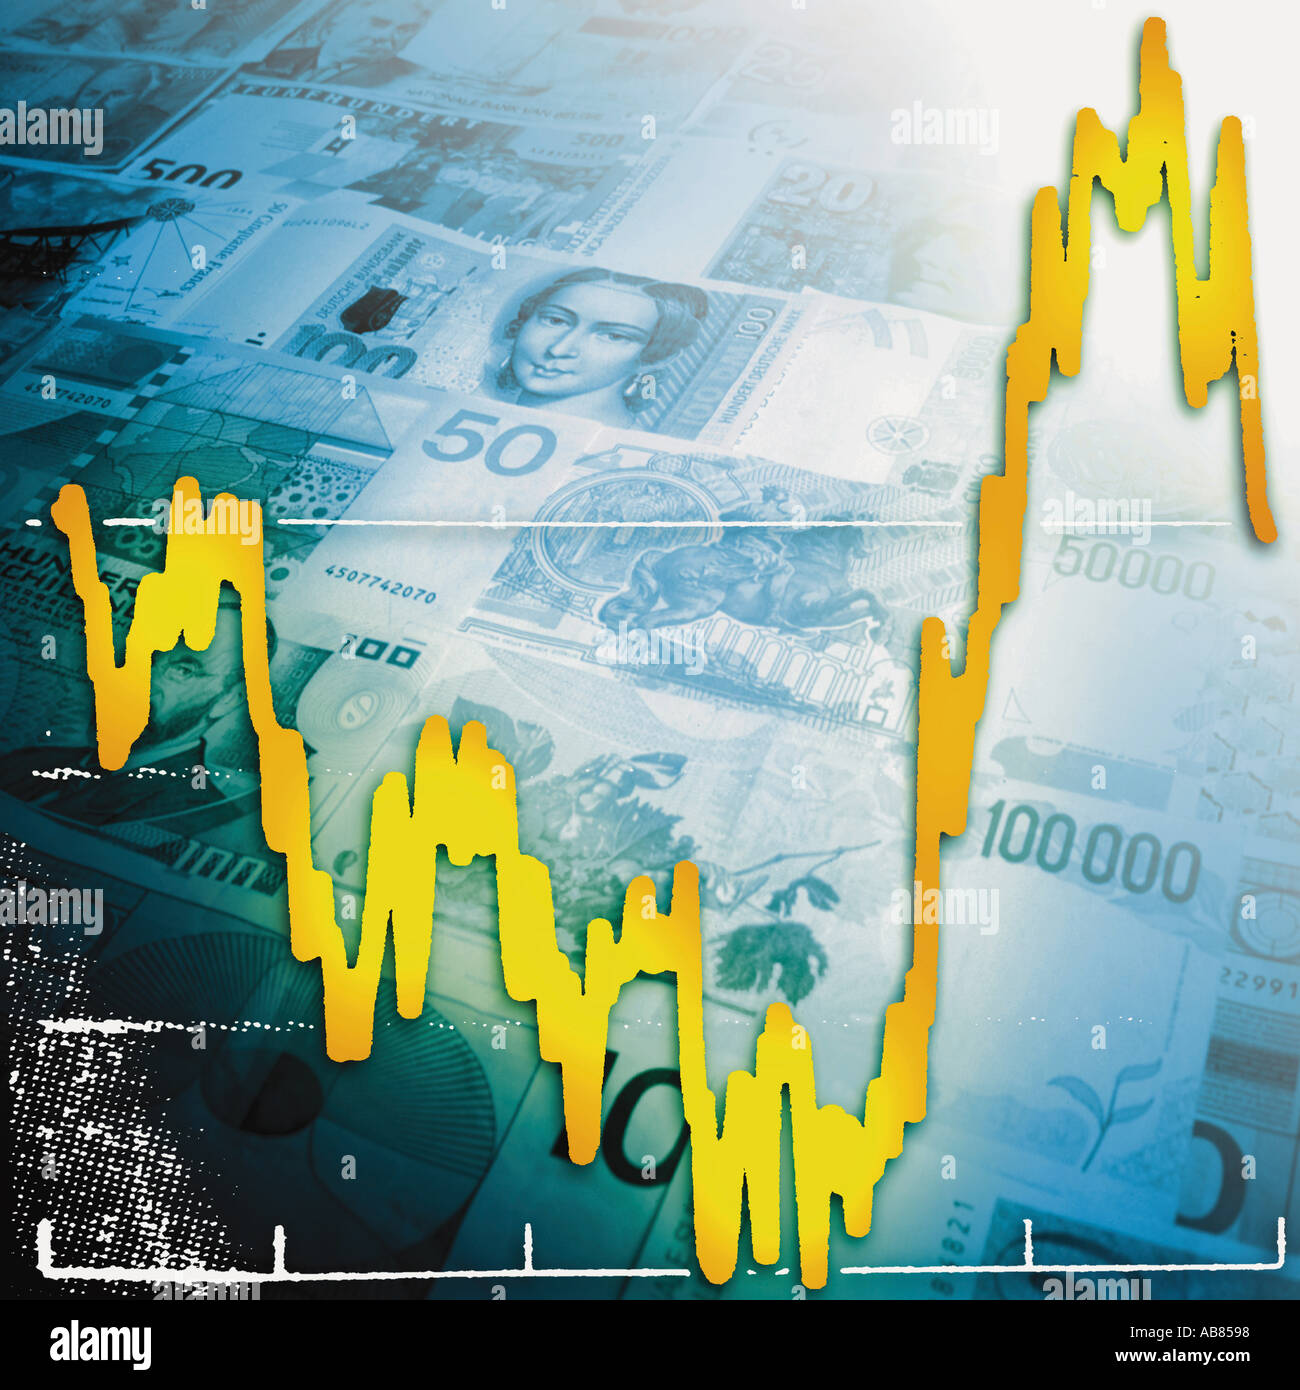 Foreign exchange - Stock Image